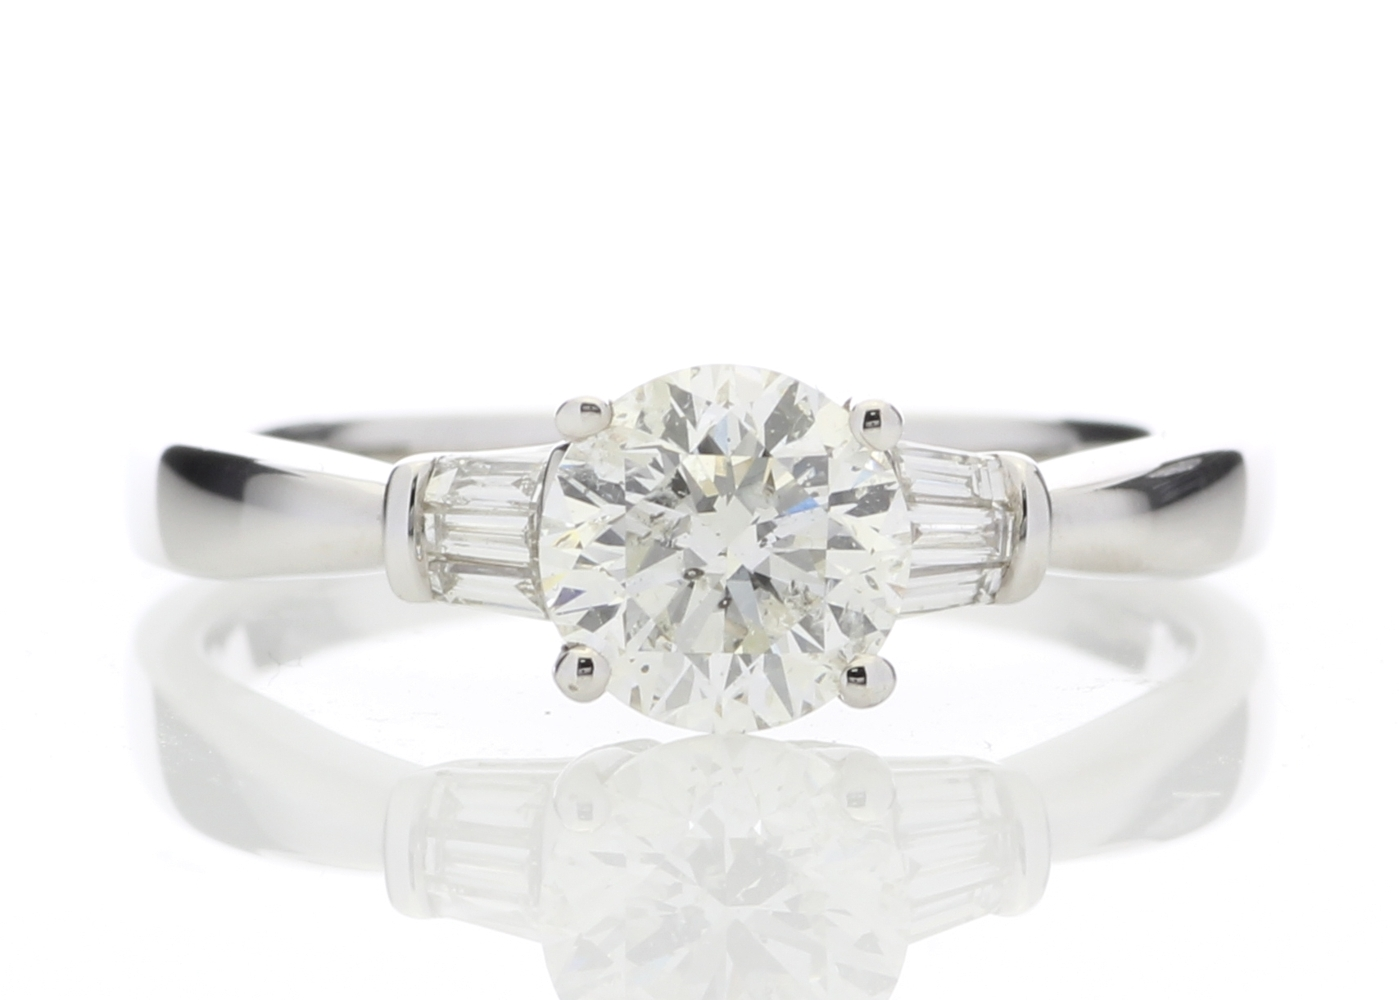 18k White Gold Diamond Ring With Baguette 1.15 Carats